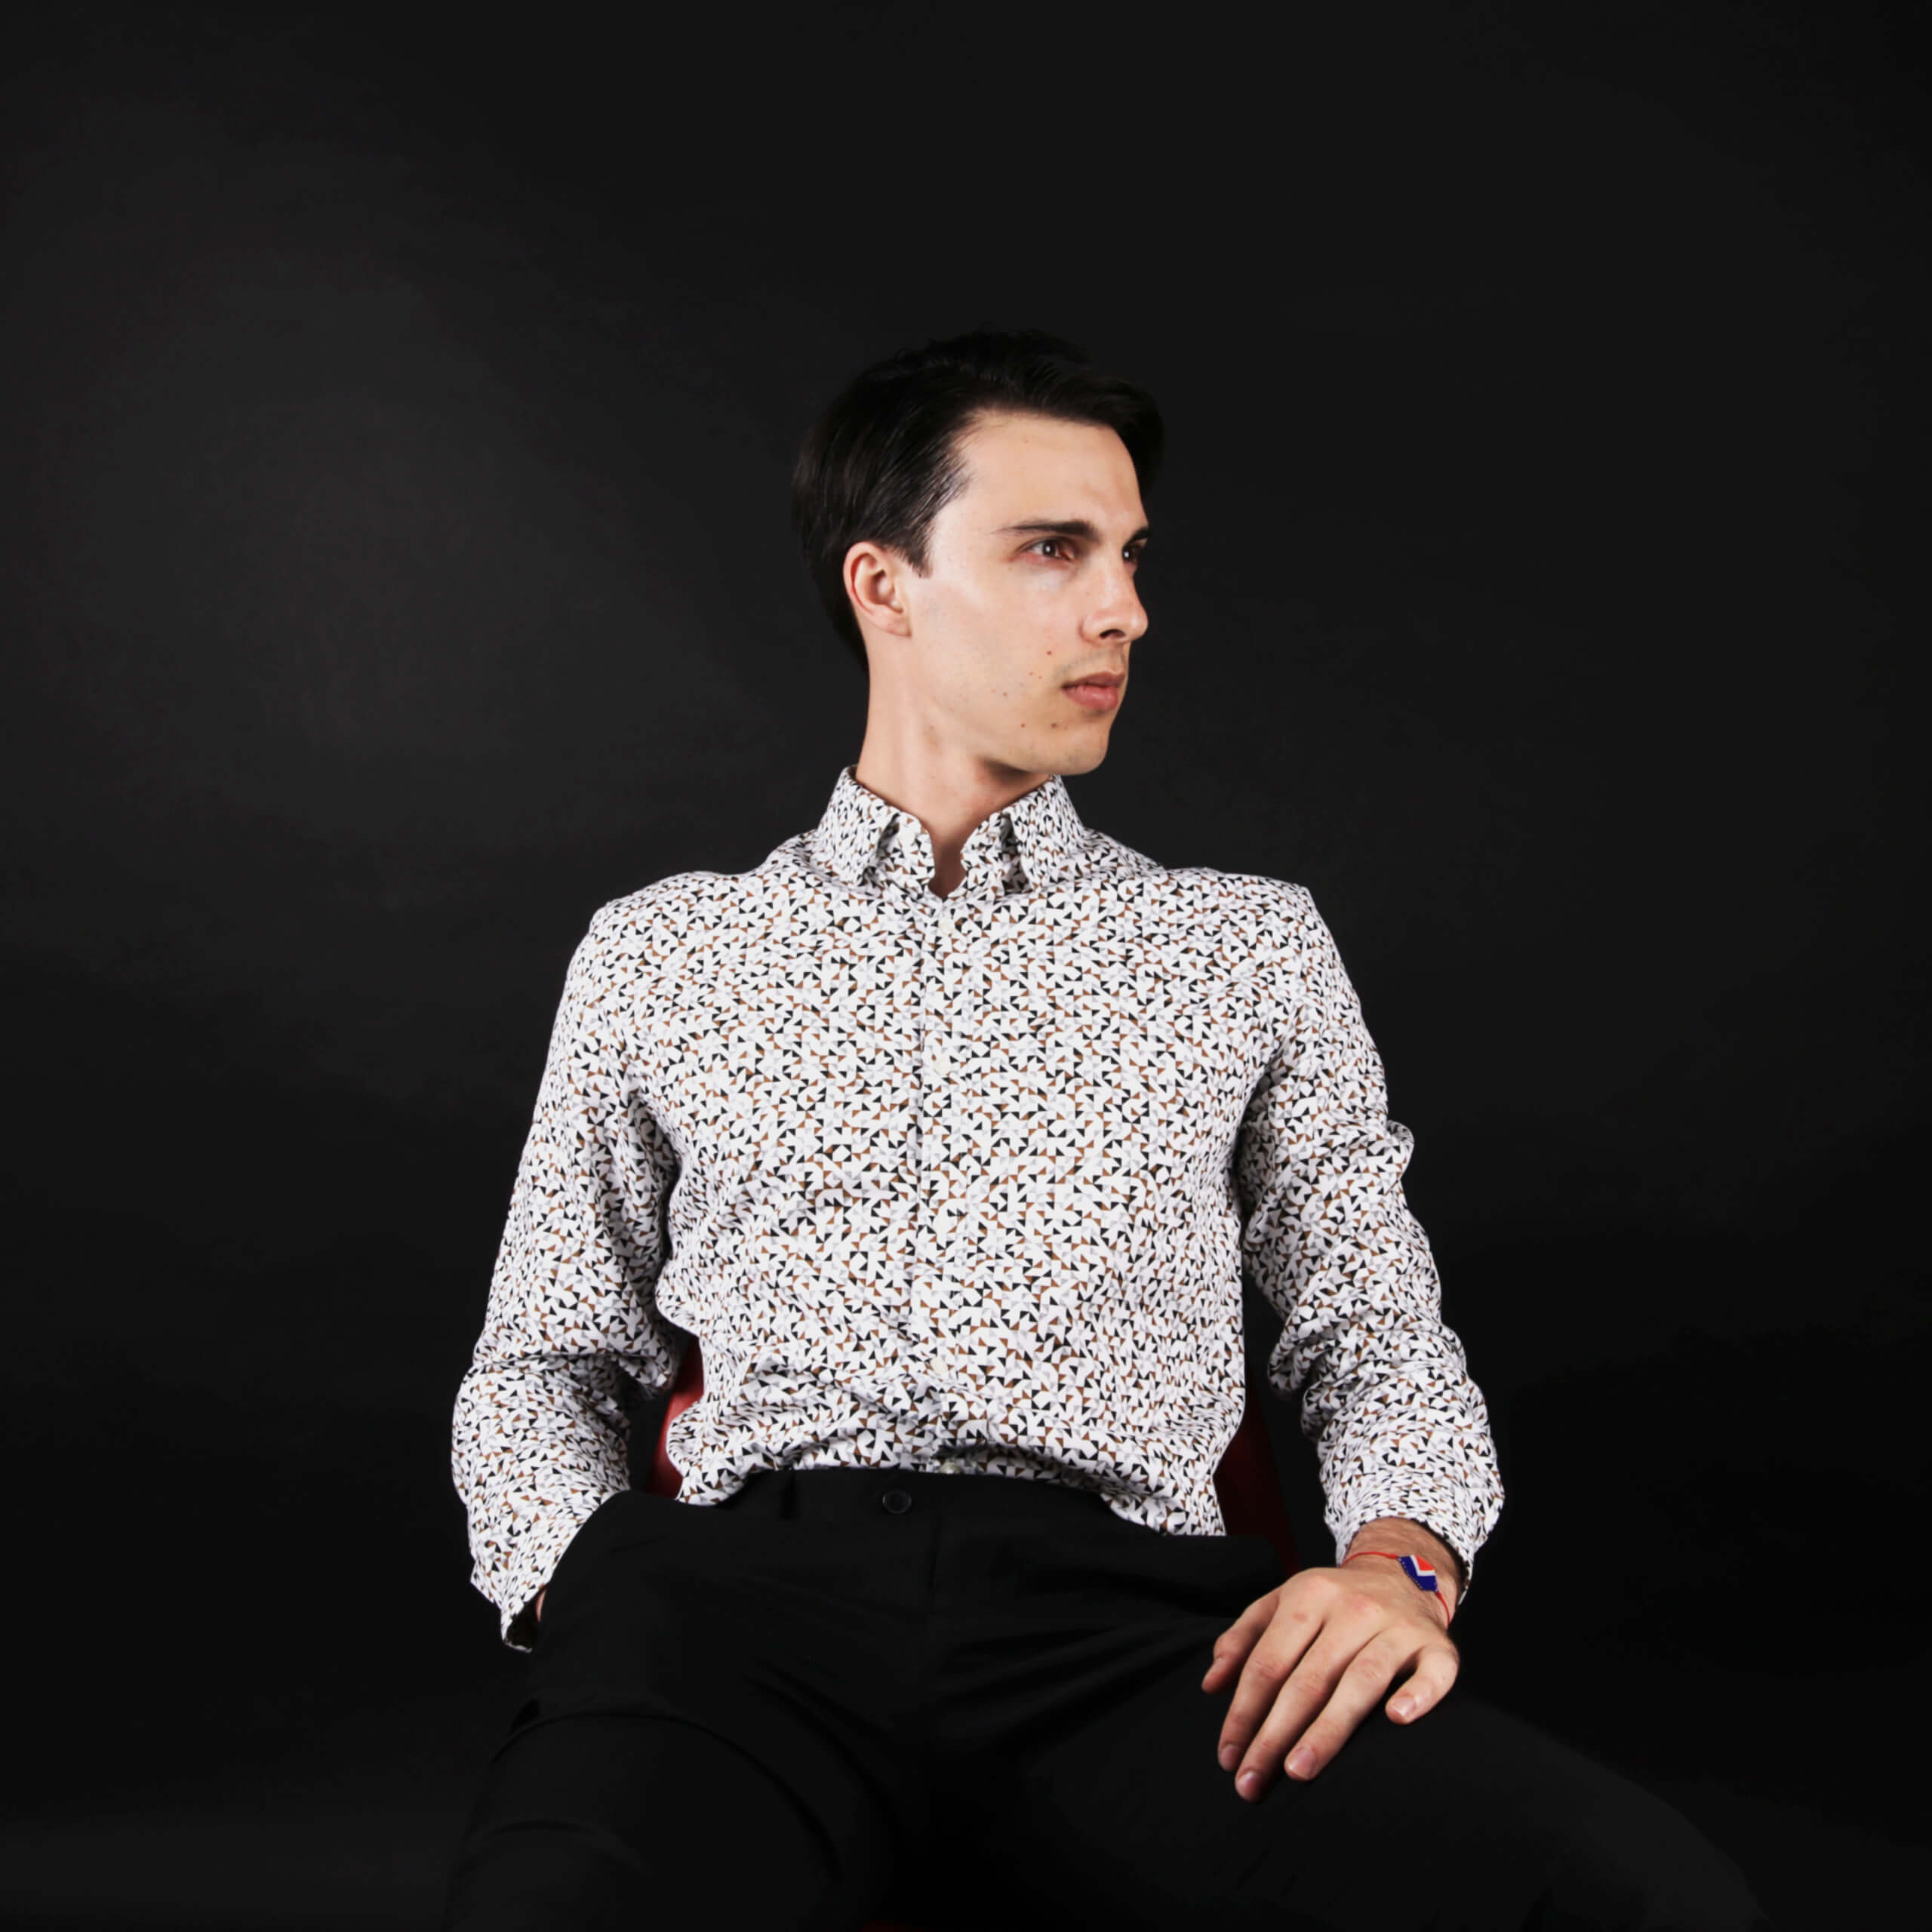 A portrait of Liam Pitcher, the Managing Director of The DJ Company.